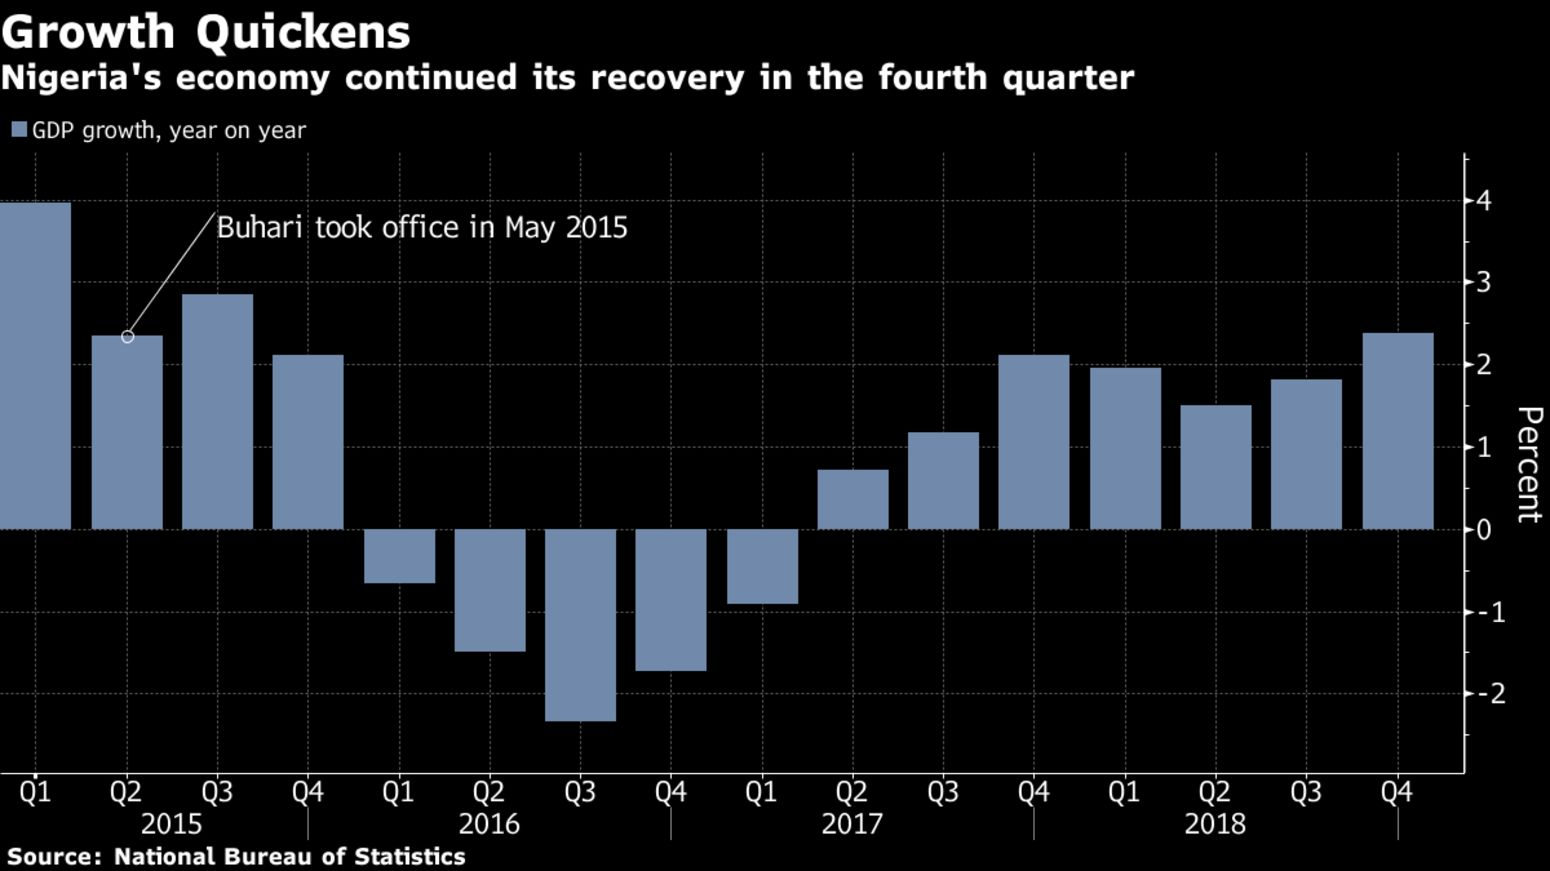 Nigeria's economy continued its recovery in the fourth quarter